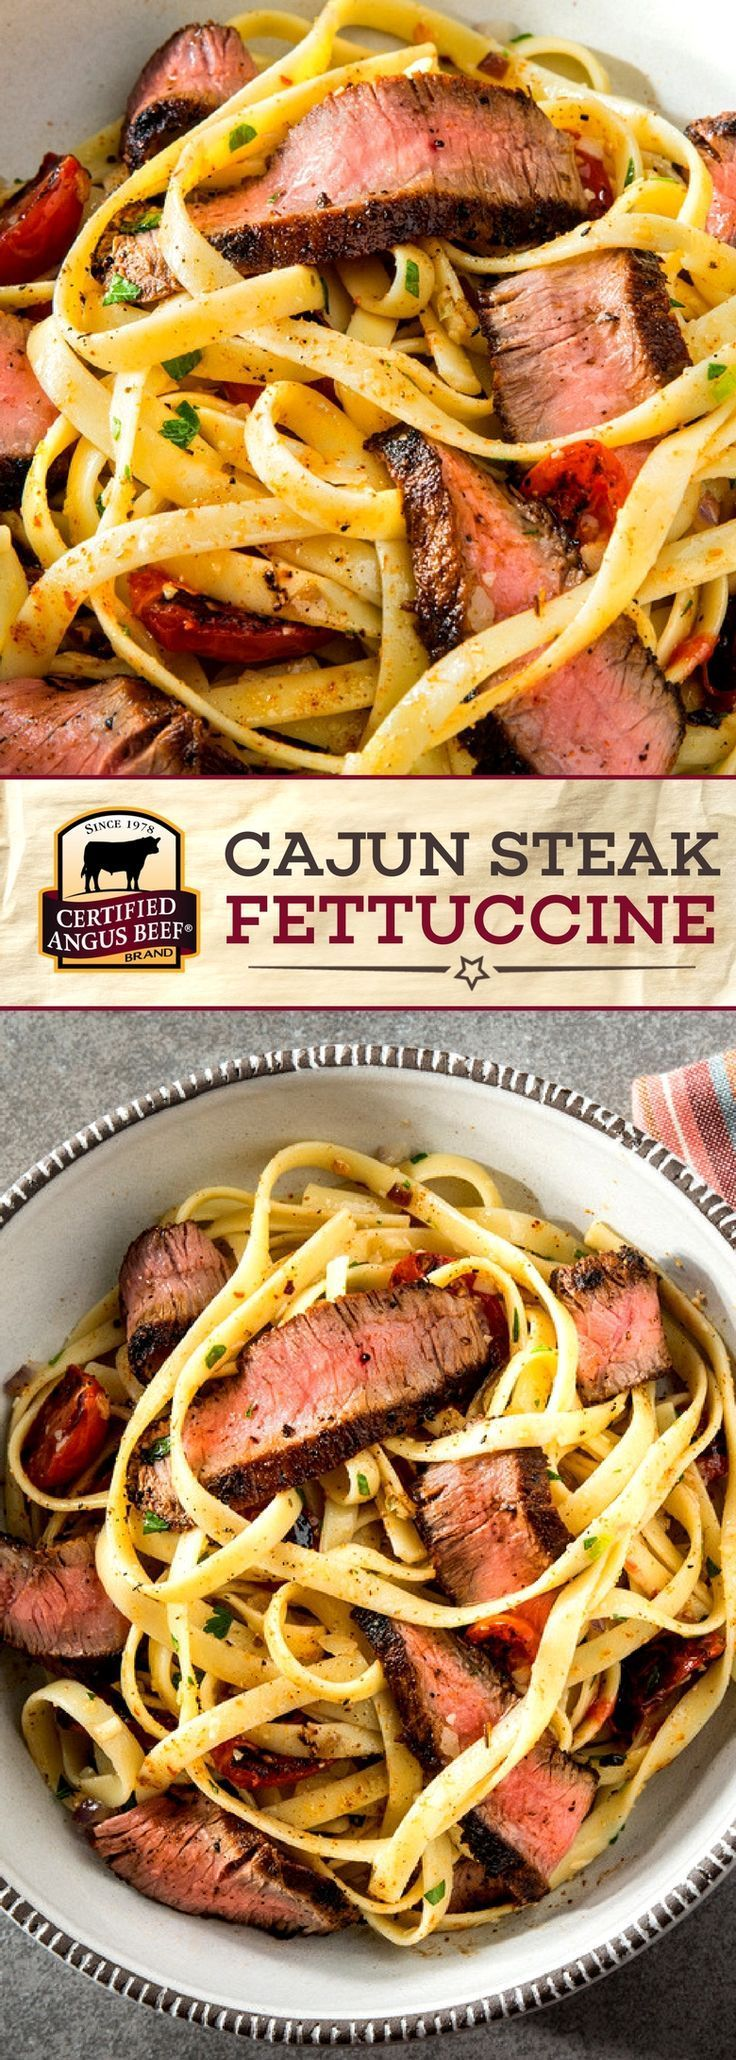 Certified Angus Beef®️️️️️️️️️ brand Cajun Steak Fettuccine is SIMPLE to make and so TASTY! The best ball tip steaks with the perfect spice rub, served over thick fettuccine with parmesan and parsley, make this a deliciously BOLD meal. #bestangusbeef #certifiedangusbeef #beefrecipe #easyrecipes #pastarecipes